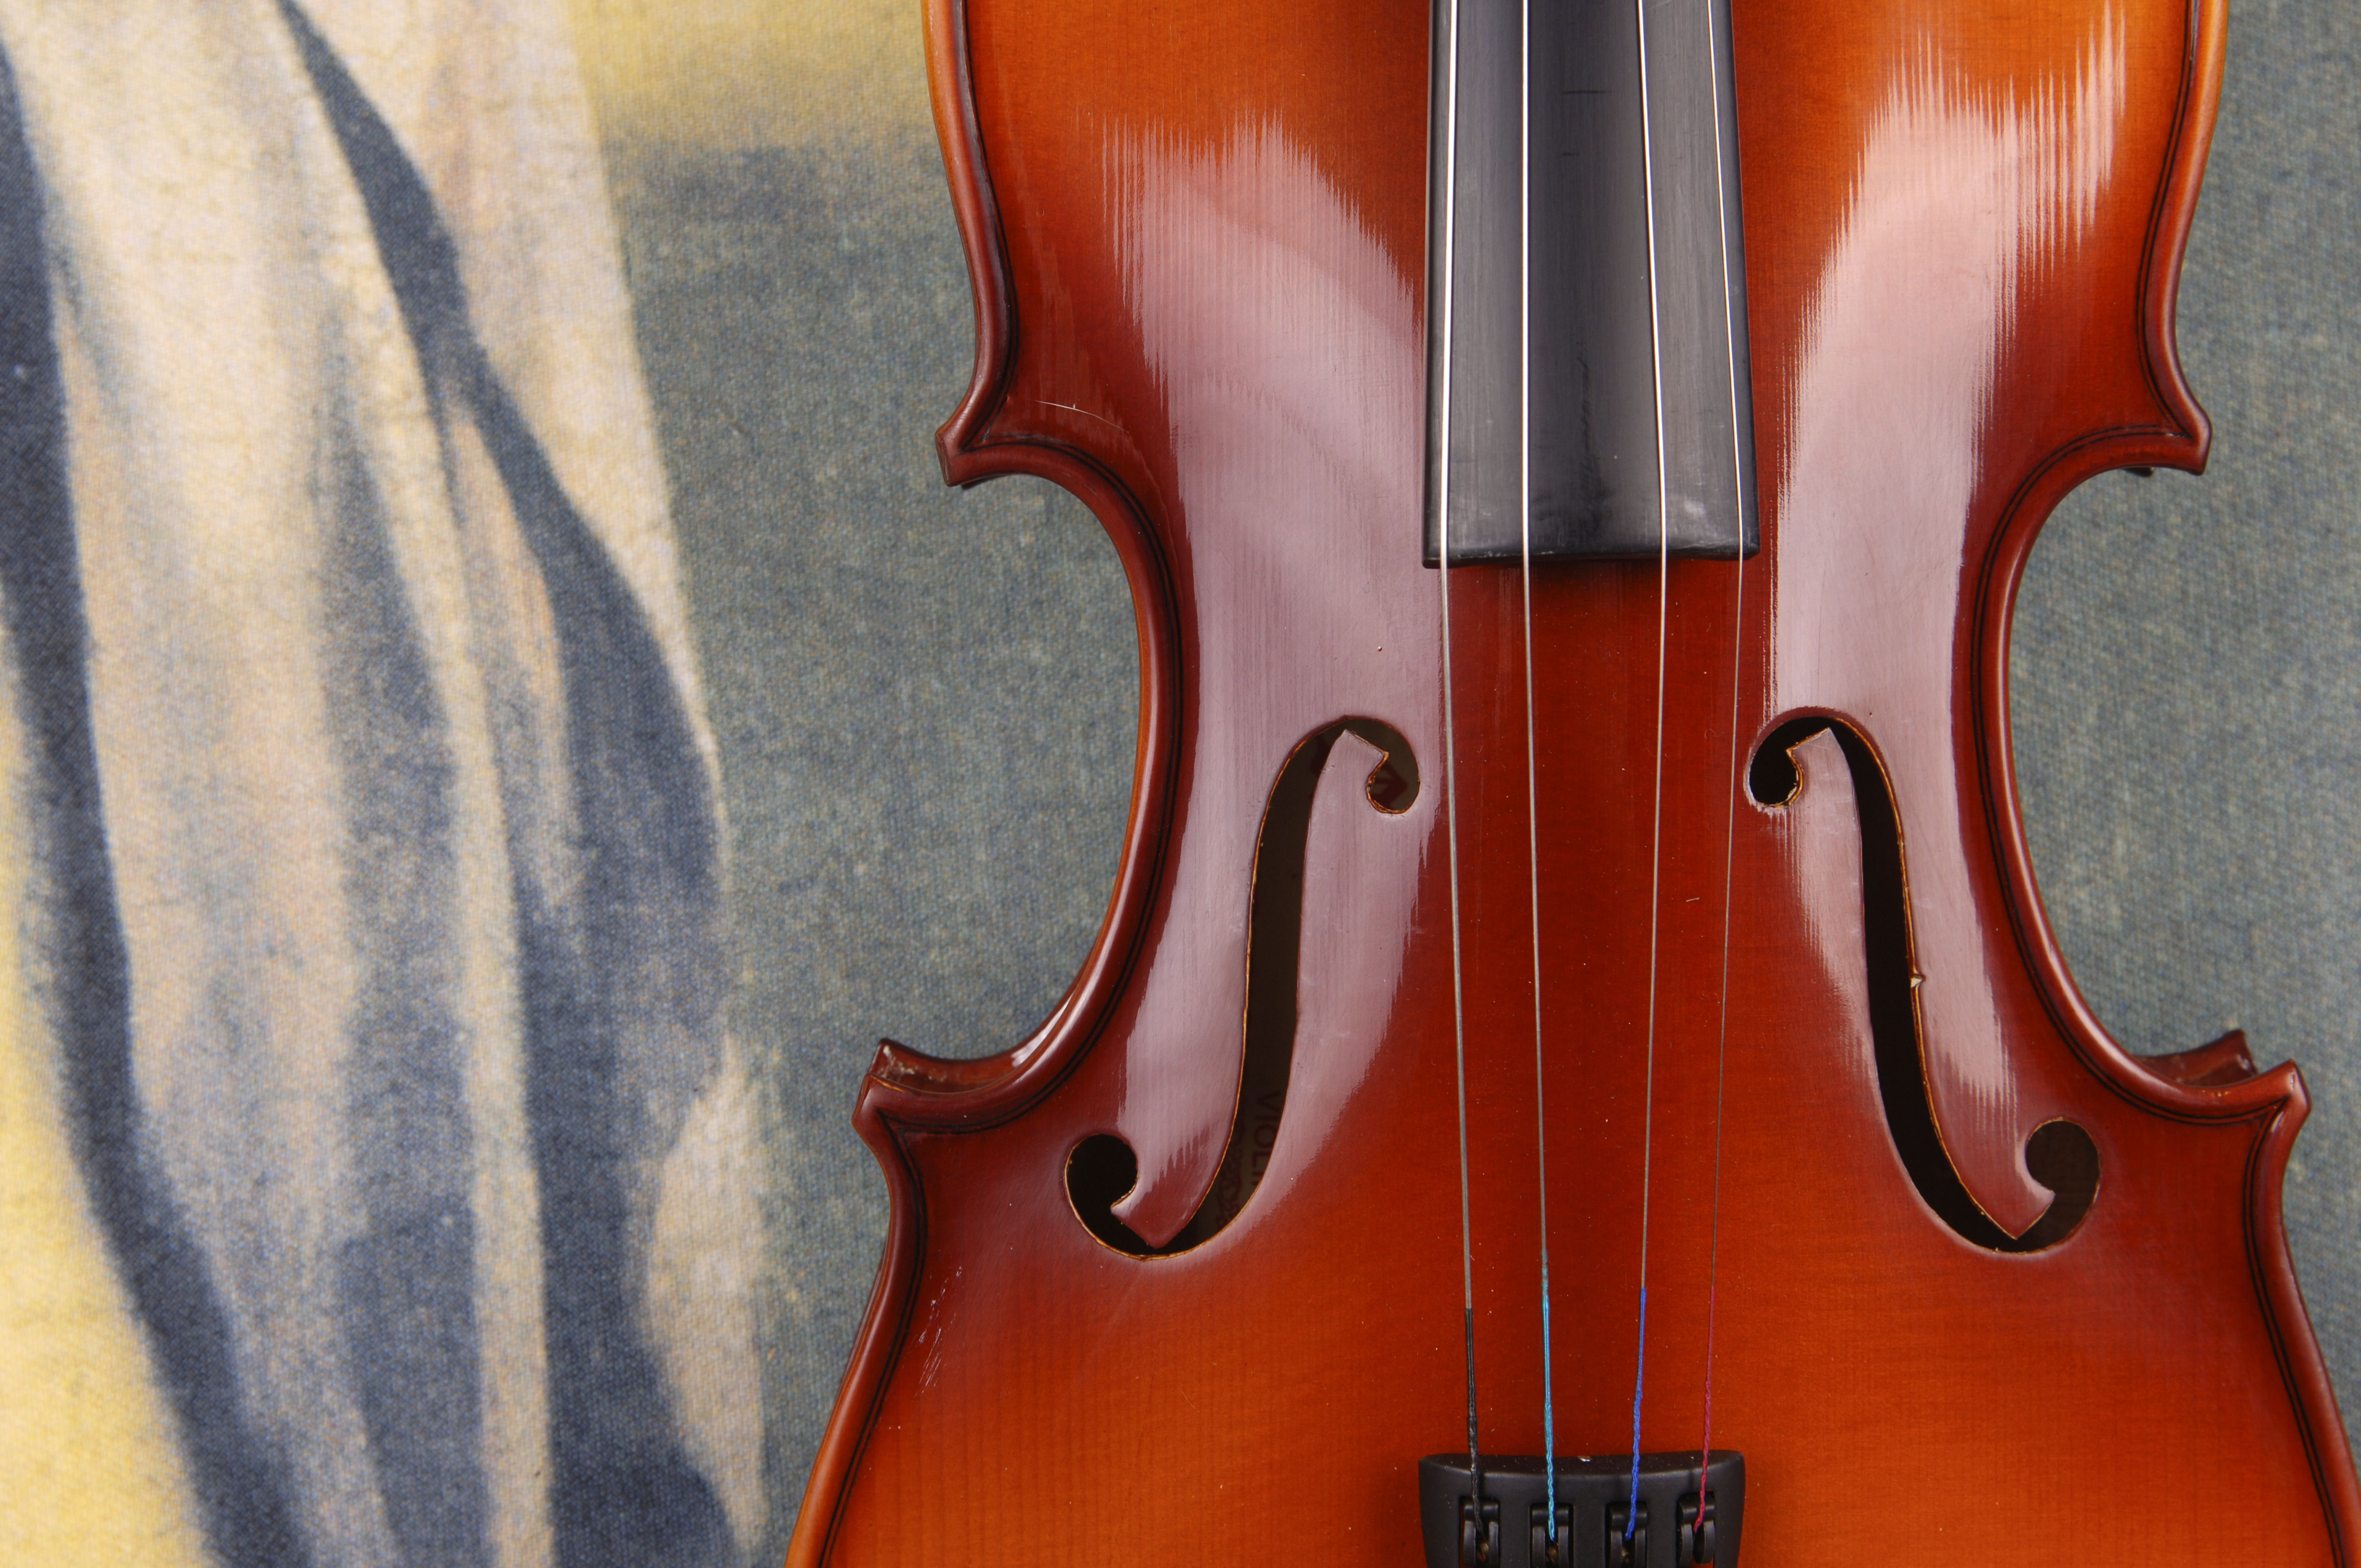 Violin against painted curtain, close-up